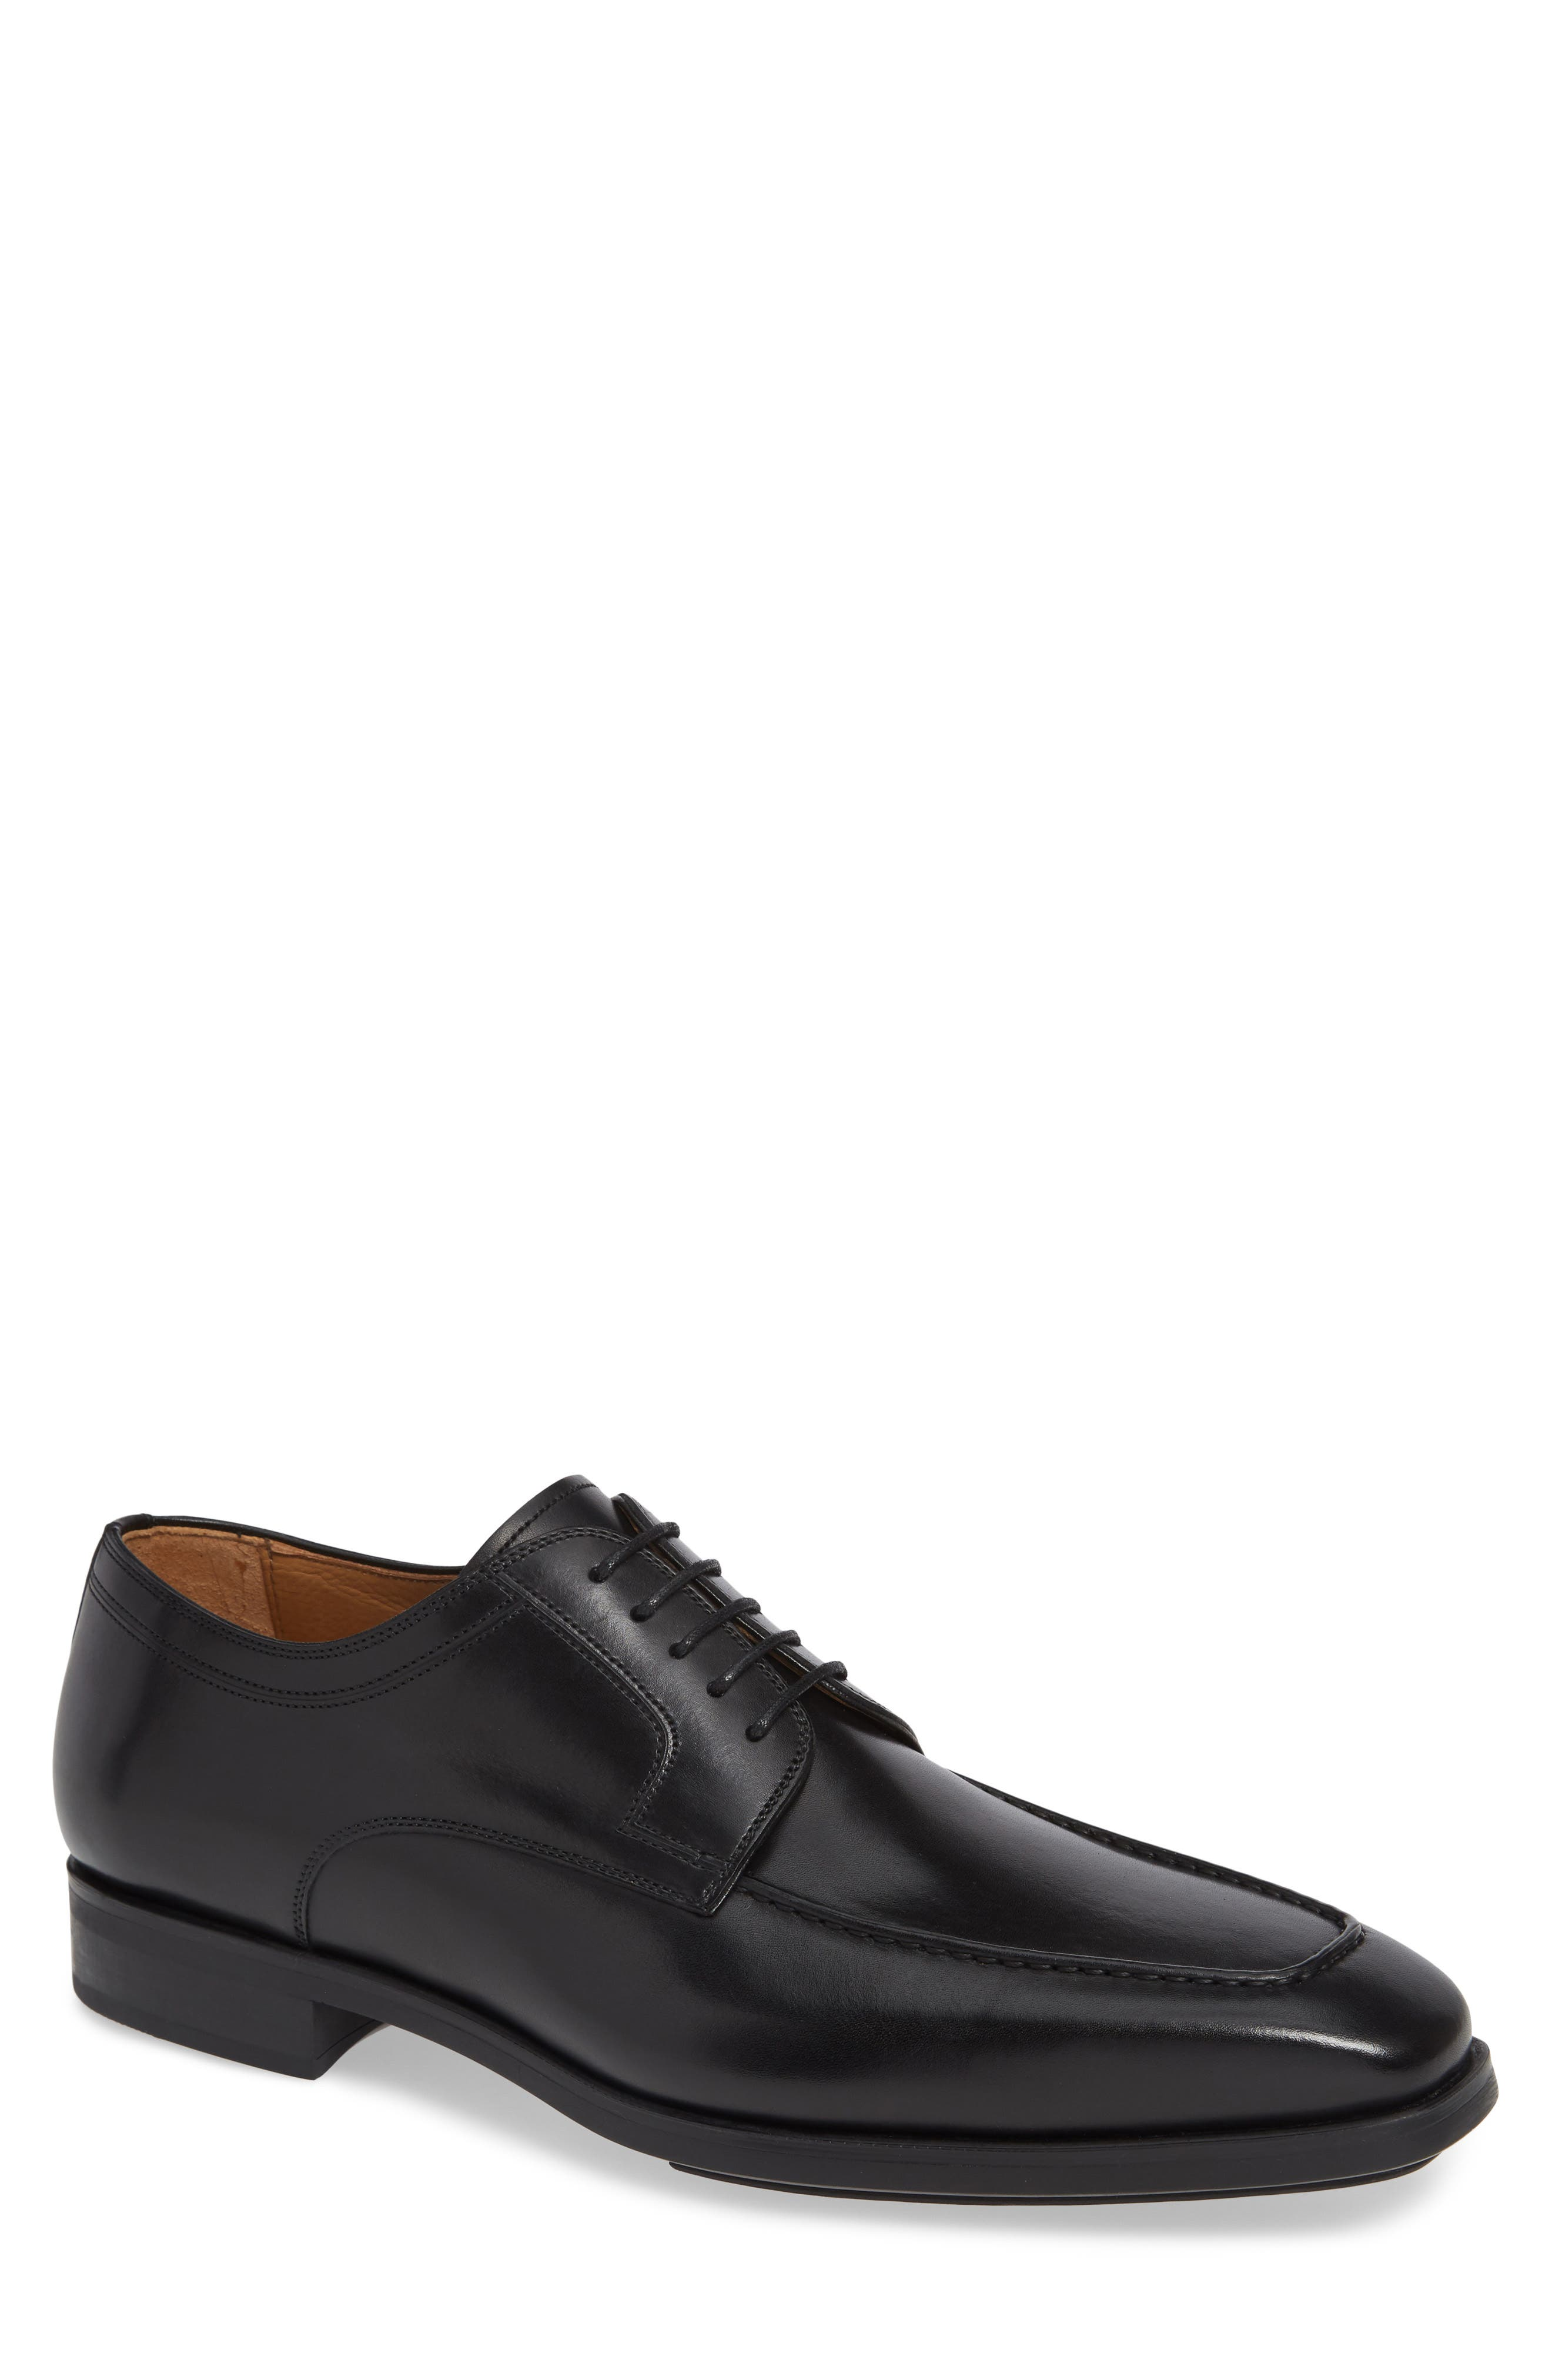 MAGNANNI, Romelo Diversa Apron Toe Derby, Main thumbnail 1, color, BLACK LEATHER